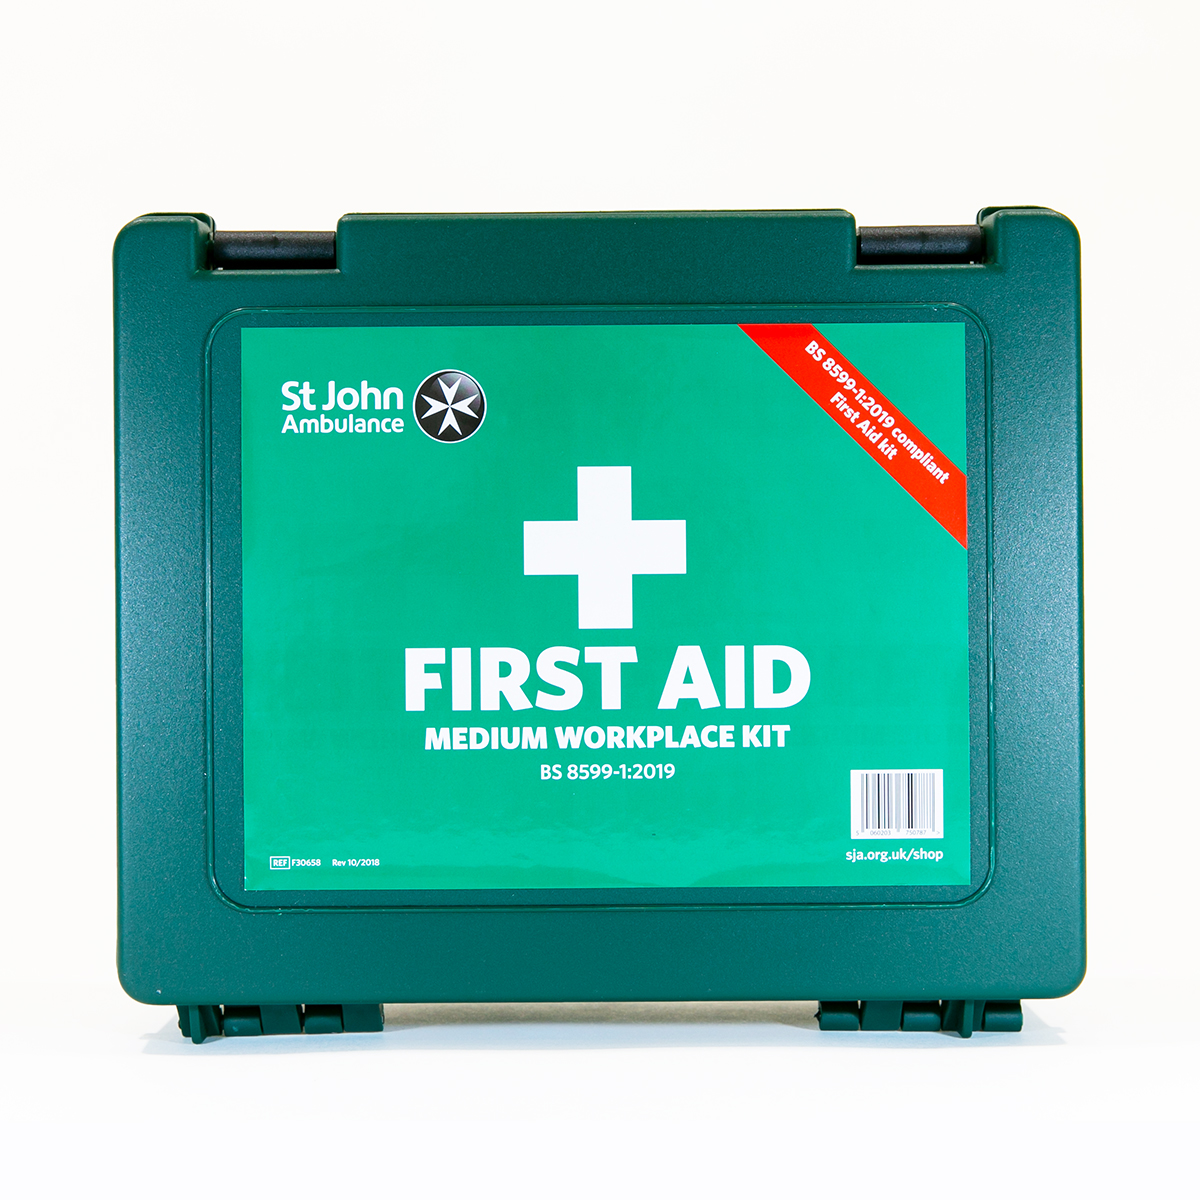 St John Ambulance Medium Standard Workplace First Aid Kit BS 8599-1:2019